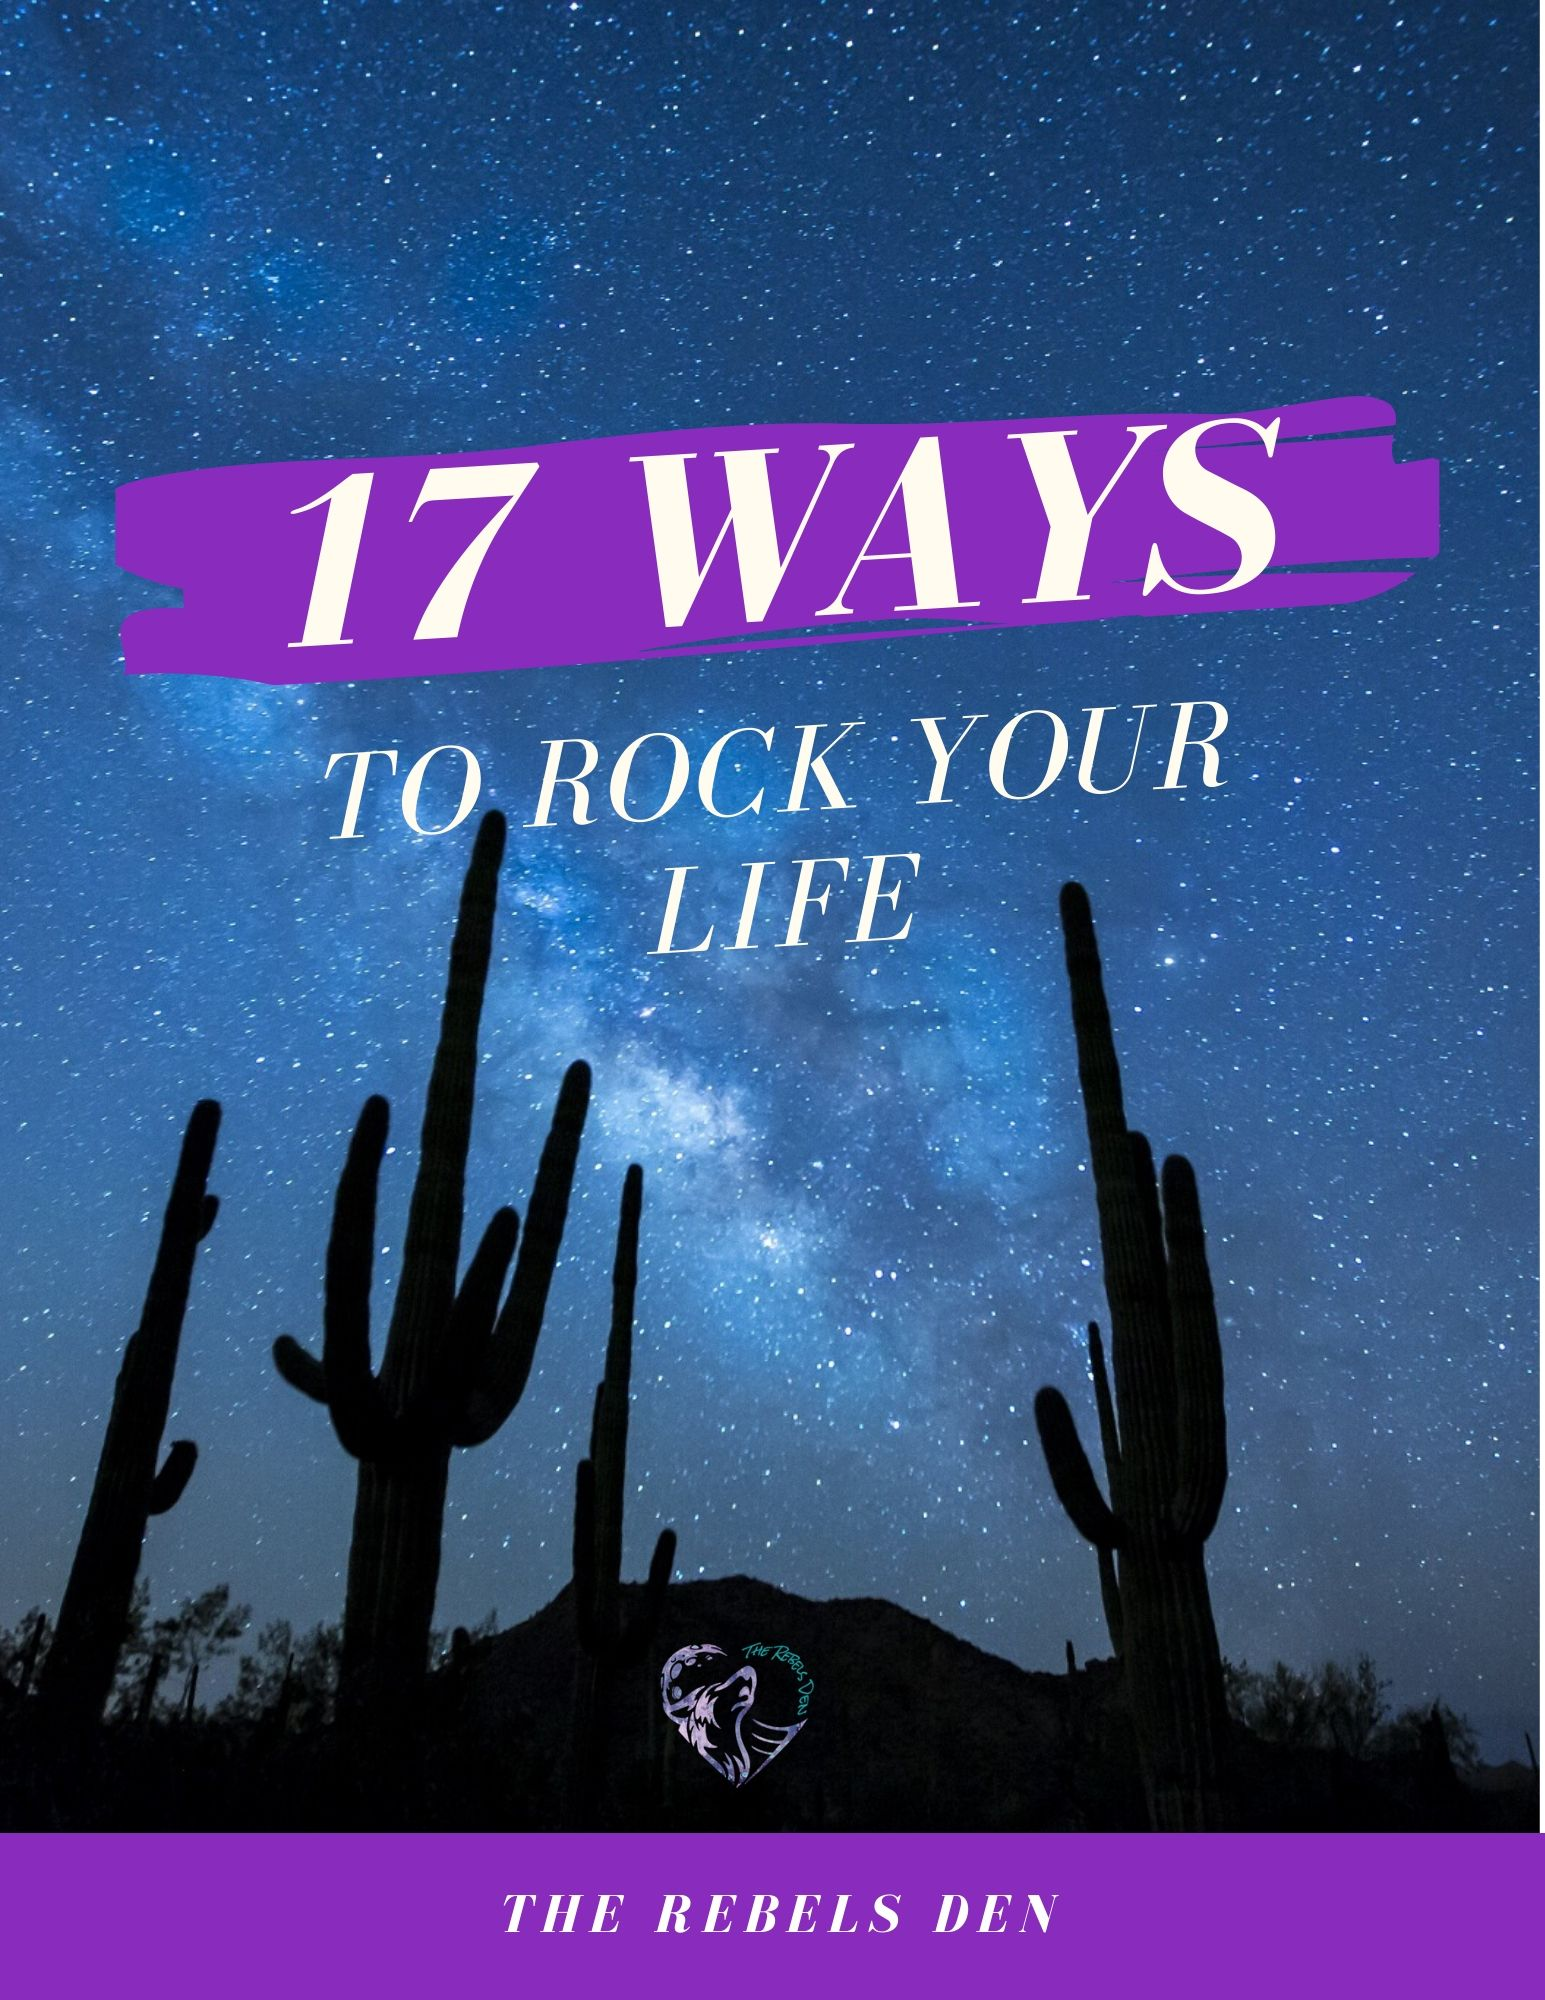 17 Ways to Rock Your Life